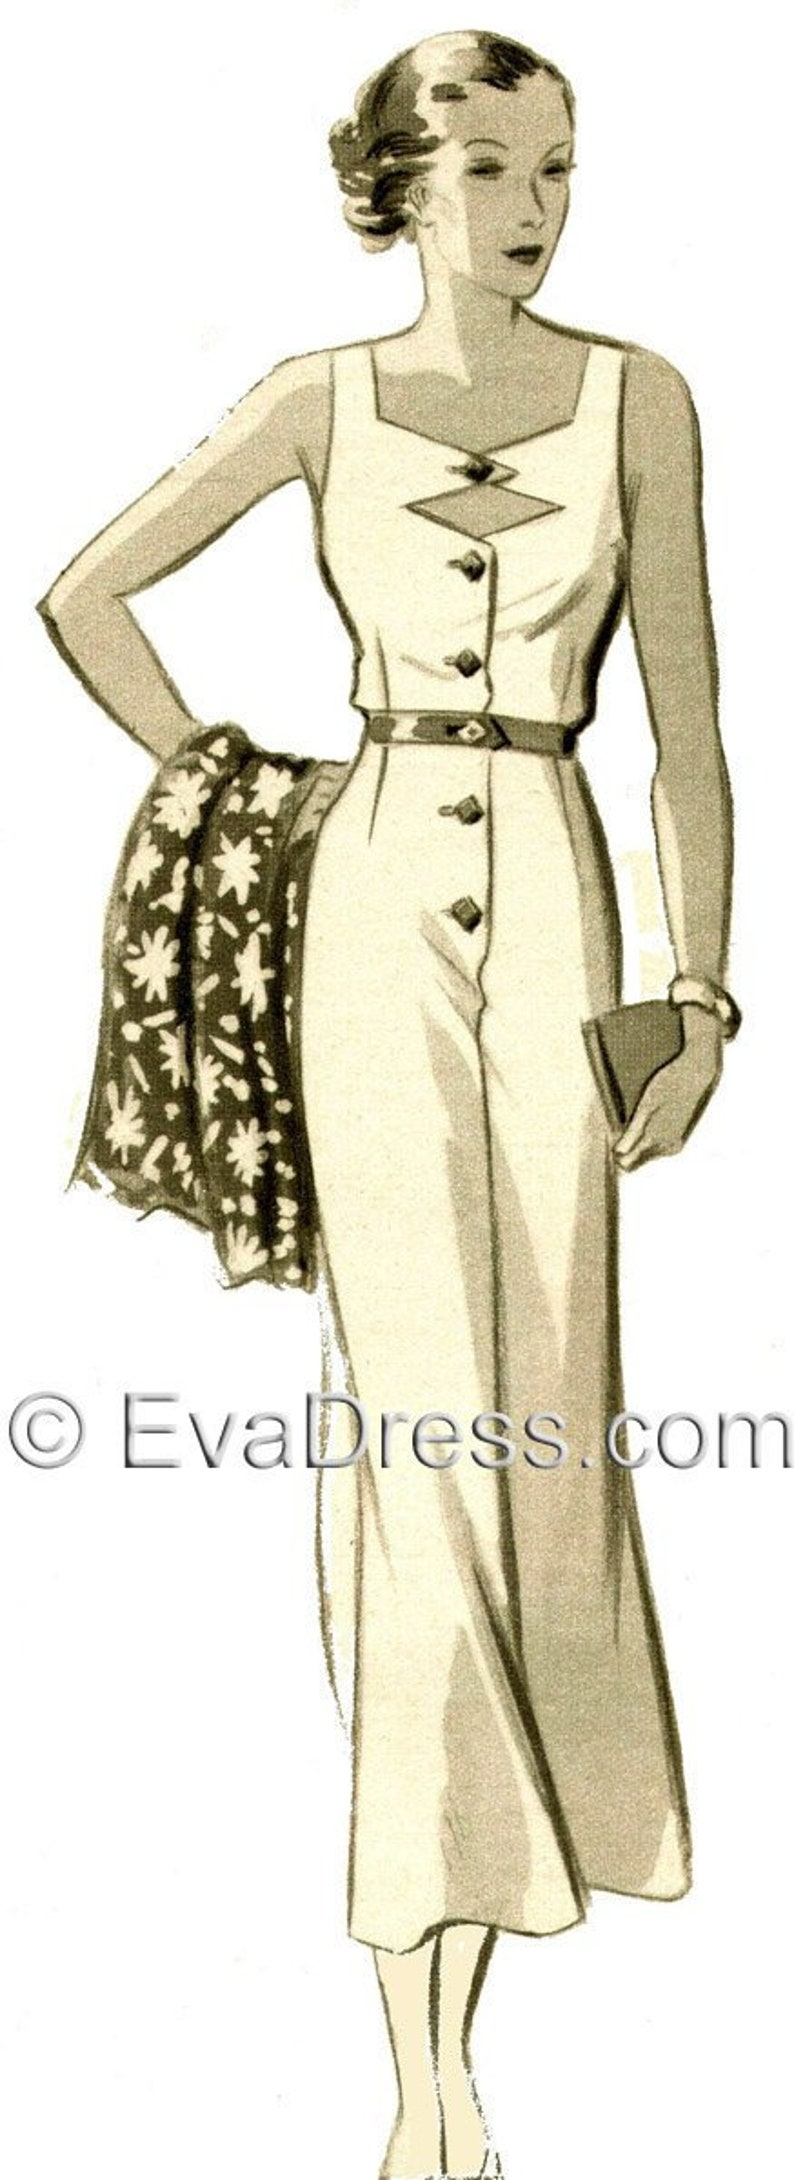 1930s Fashion Colors & Fabric 1935 Beach Dress DIGITAL PATTERN Size A by EvaDress $10.00 AT vintagedancer.com